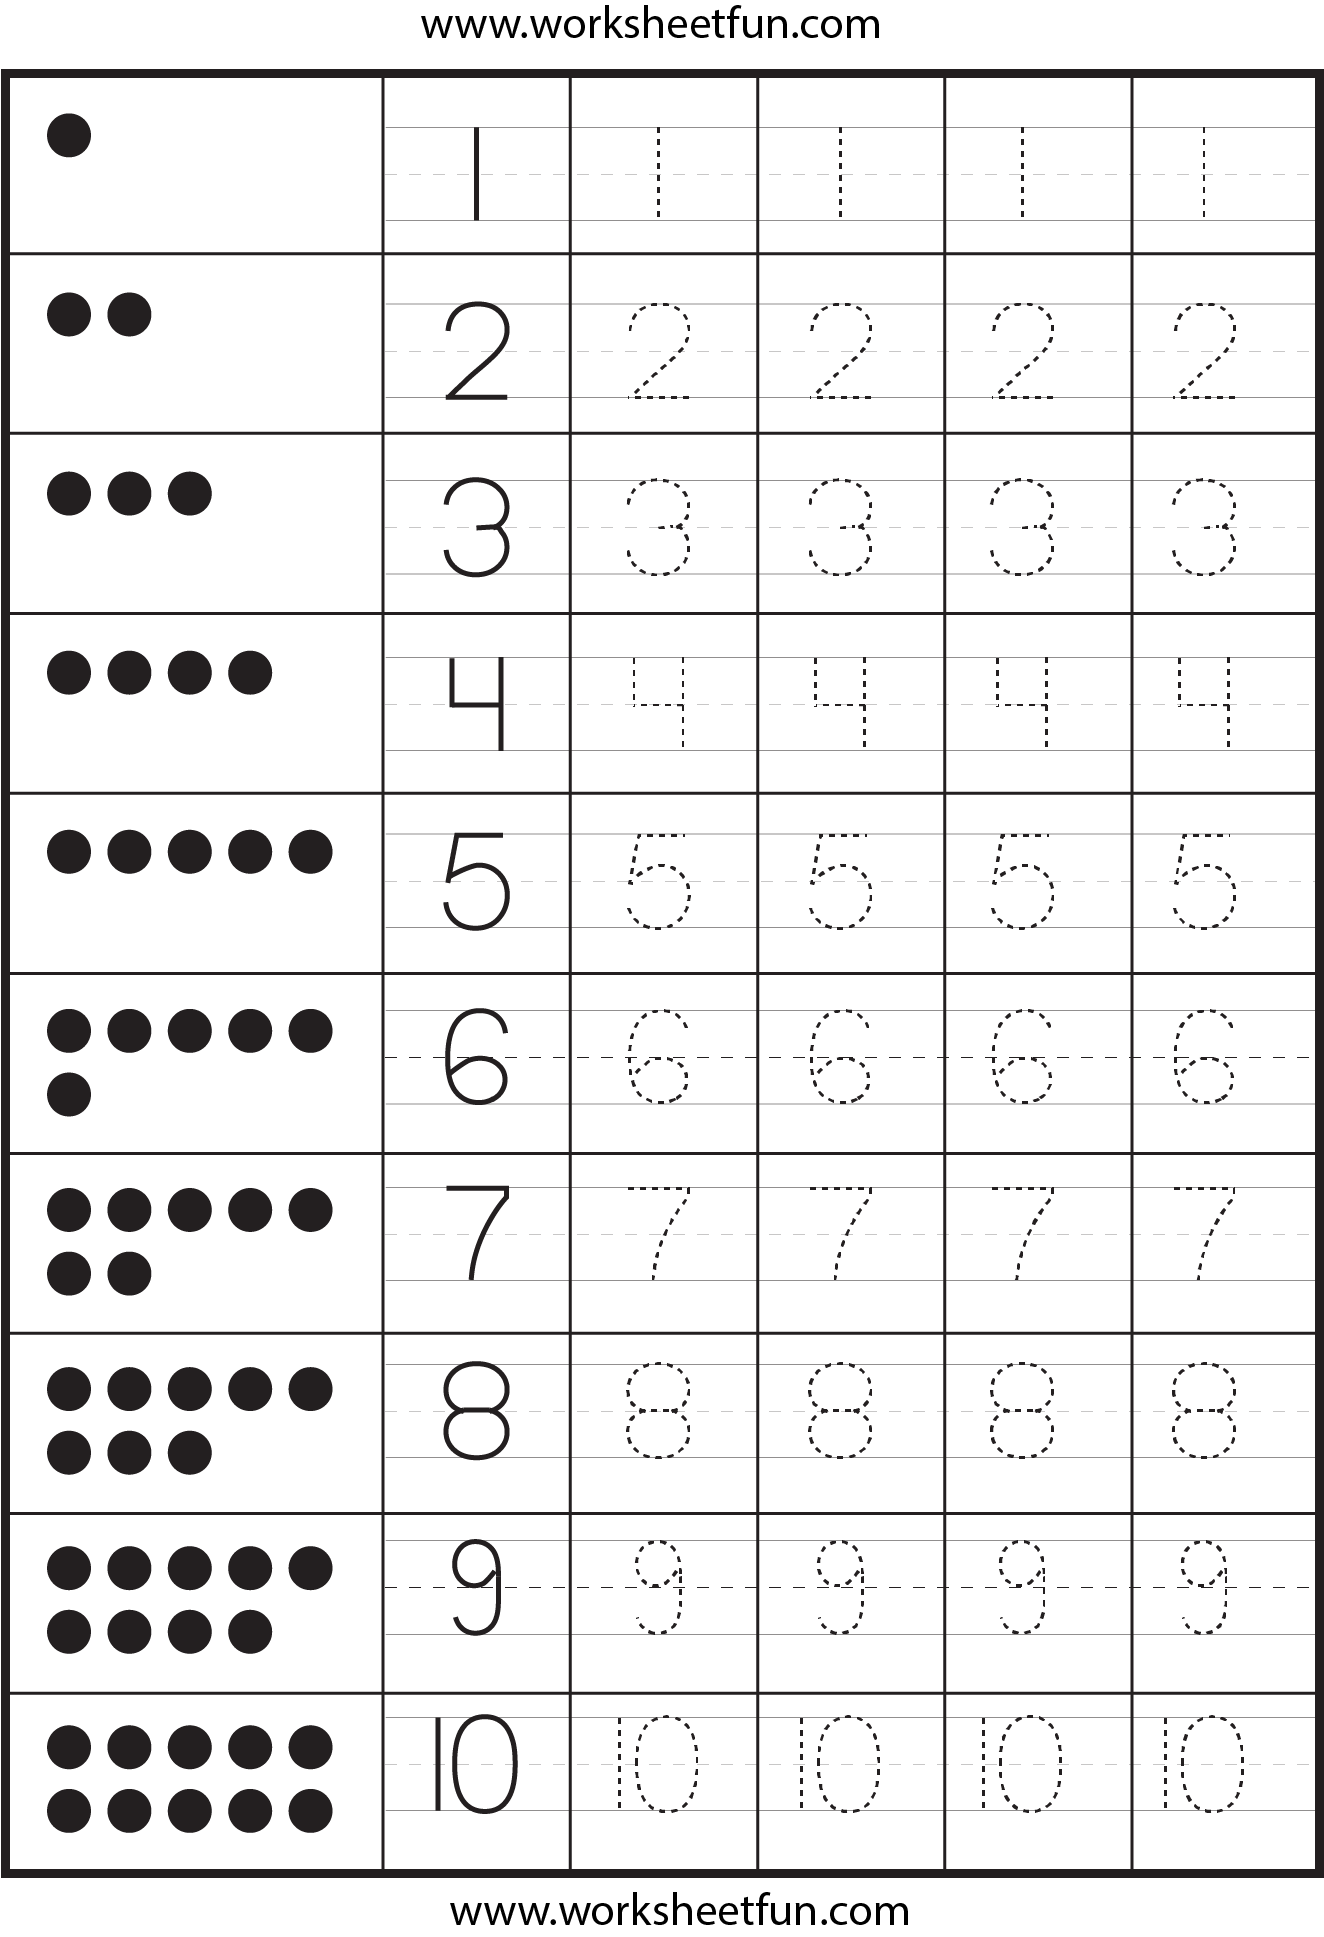 7 Best Images of Traceable Numbers Worksheets Printable ...